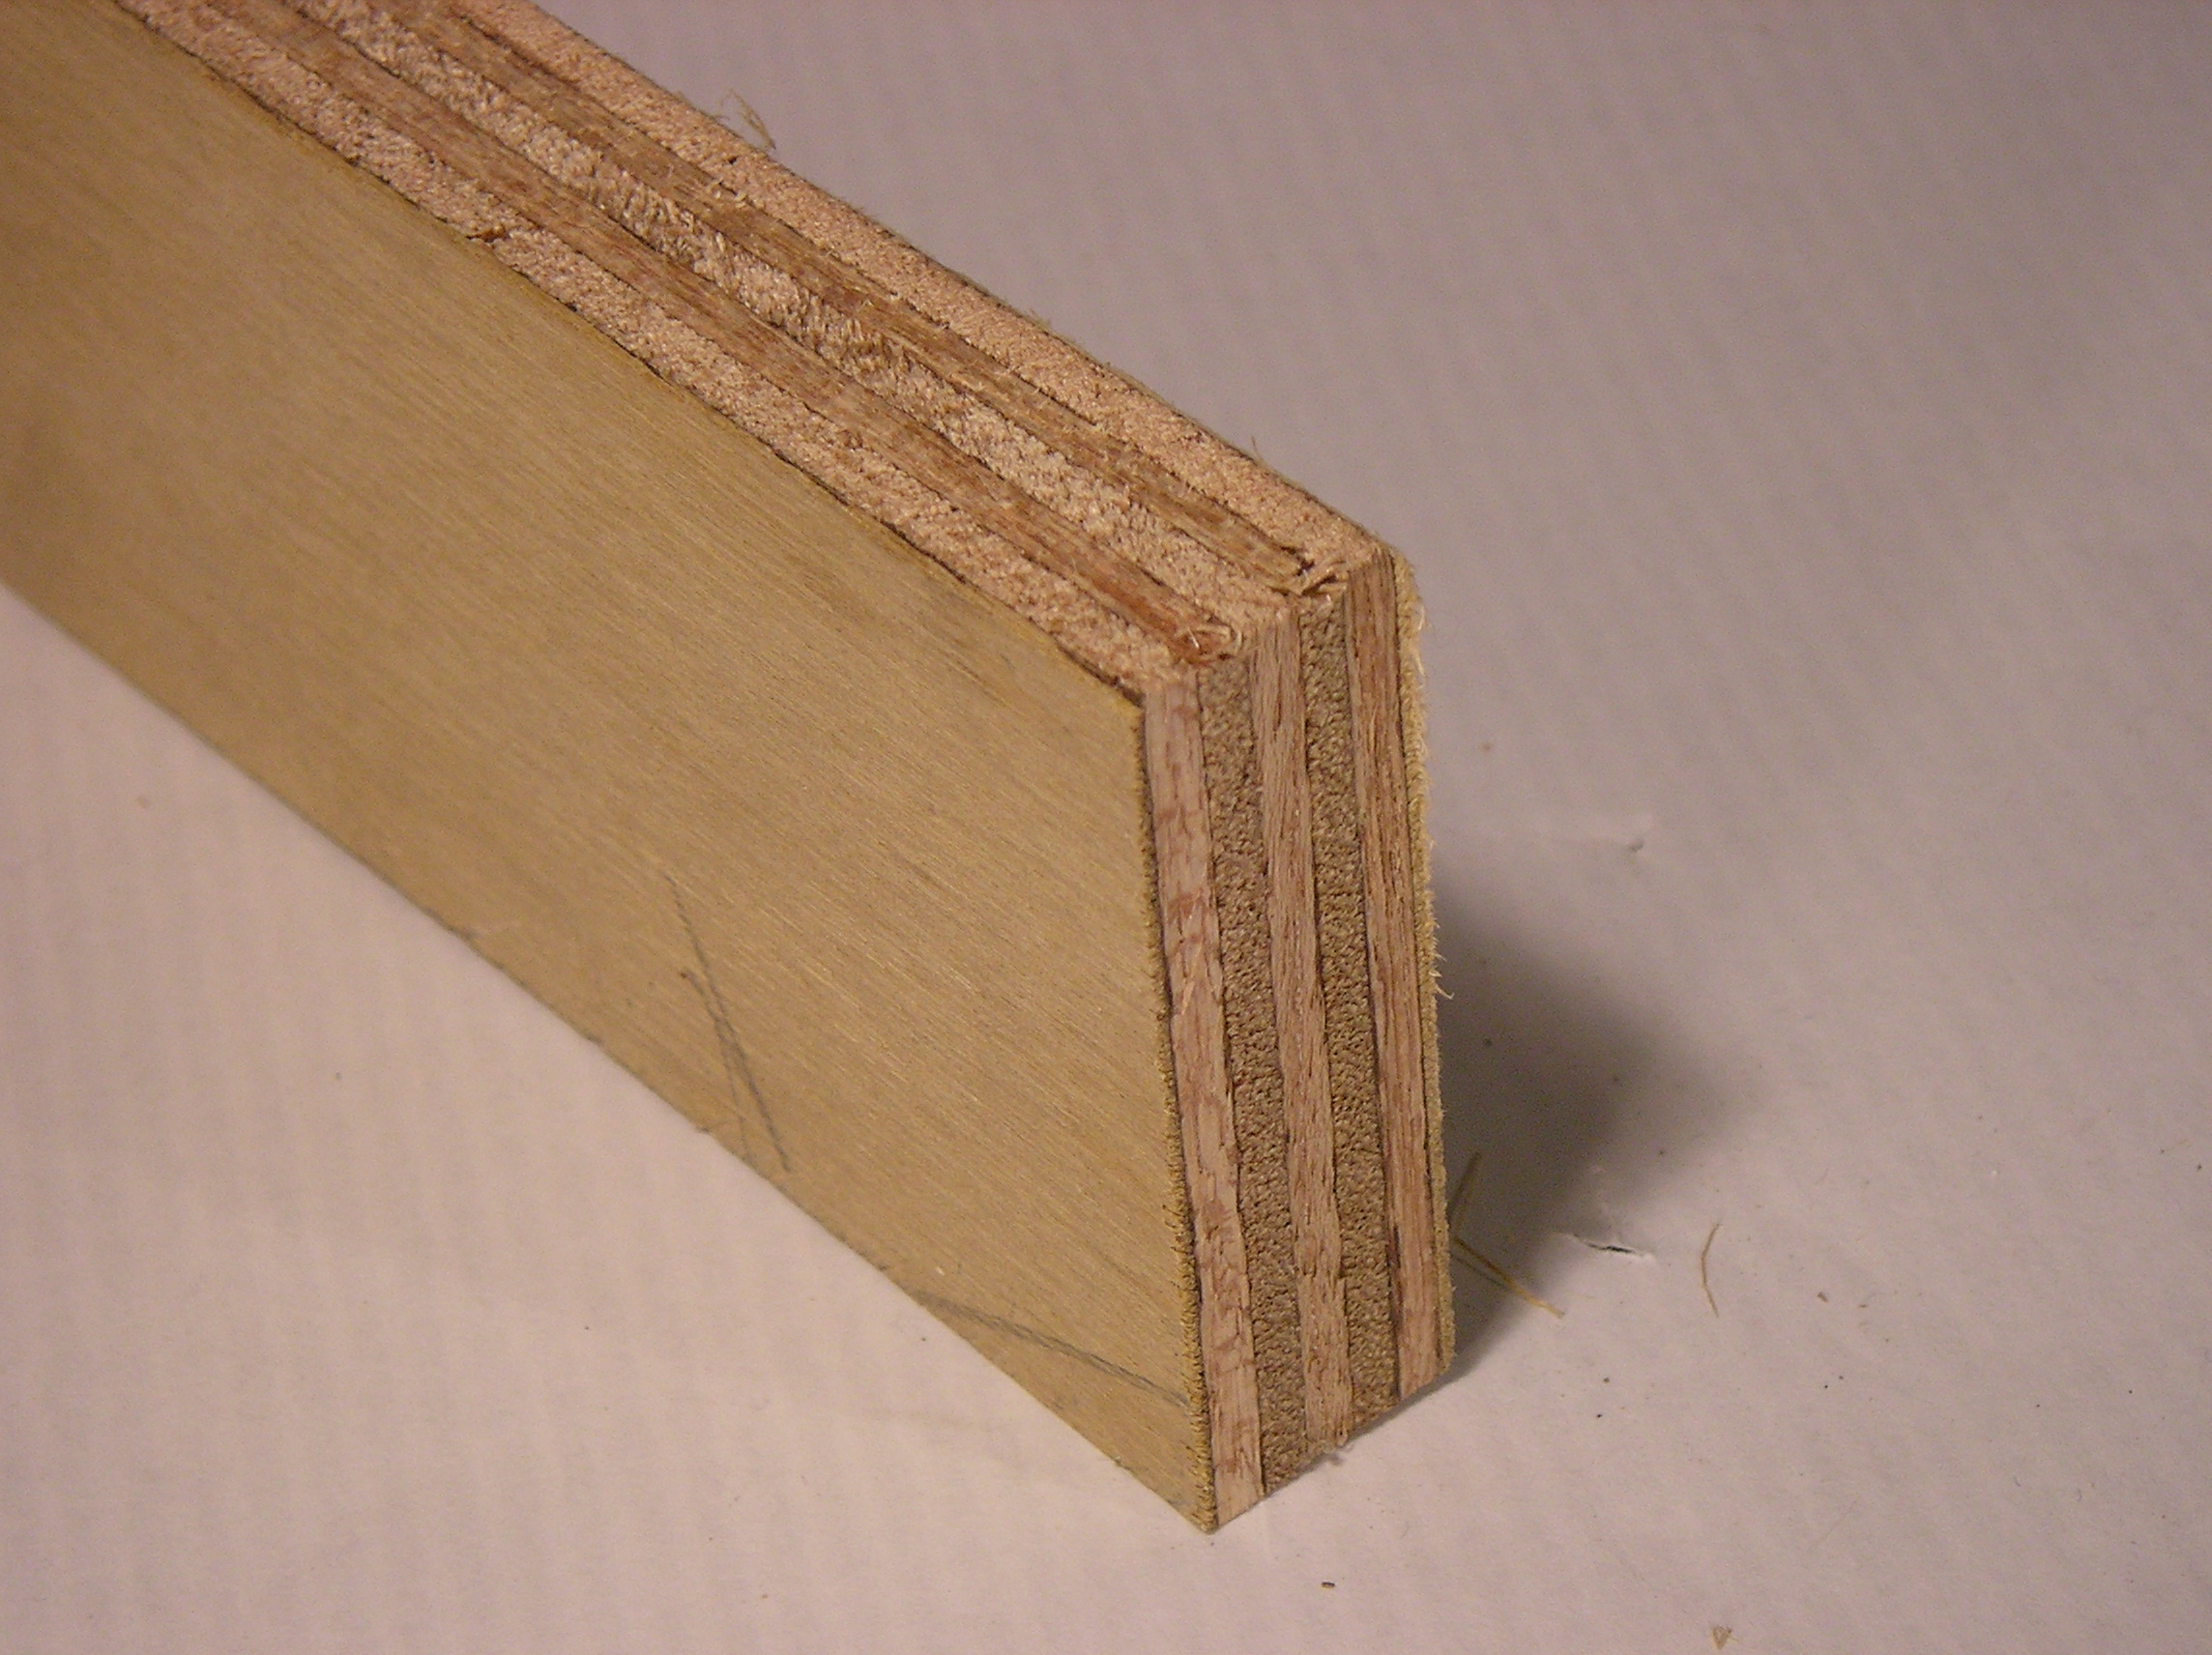 Medium Density Fiberboard Lowe S ~ Is anything will share benefits of wood kitchen cabinets